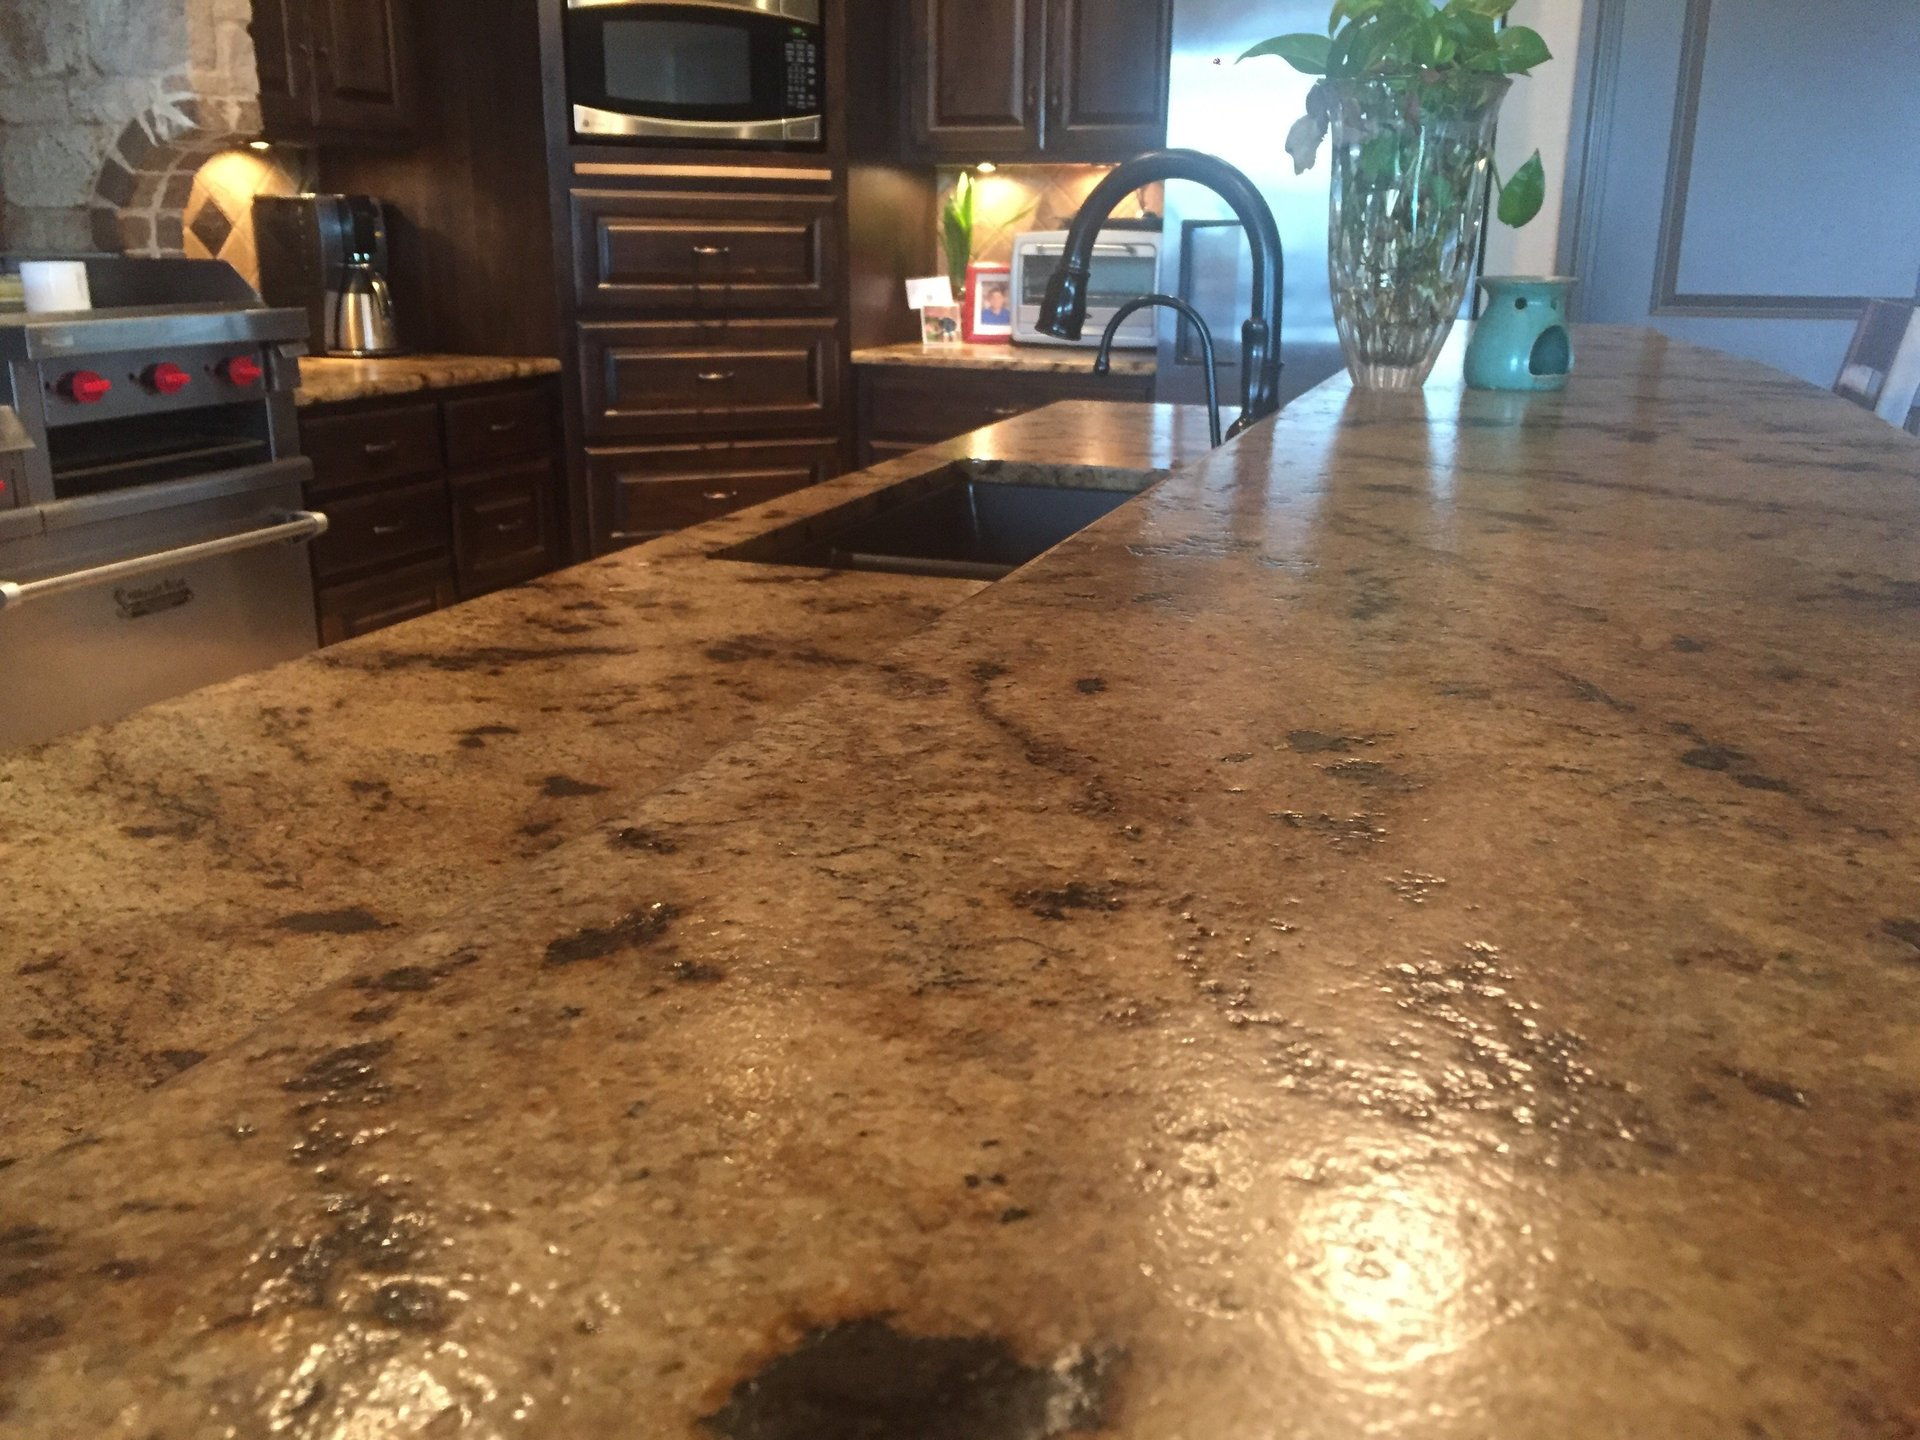 astonishing cutouts wood custom finishes in options drainboards countertop countertops nice